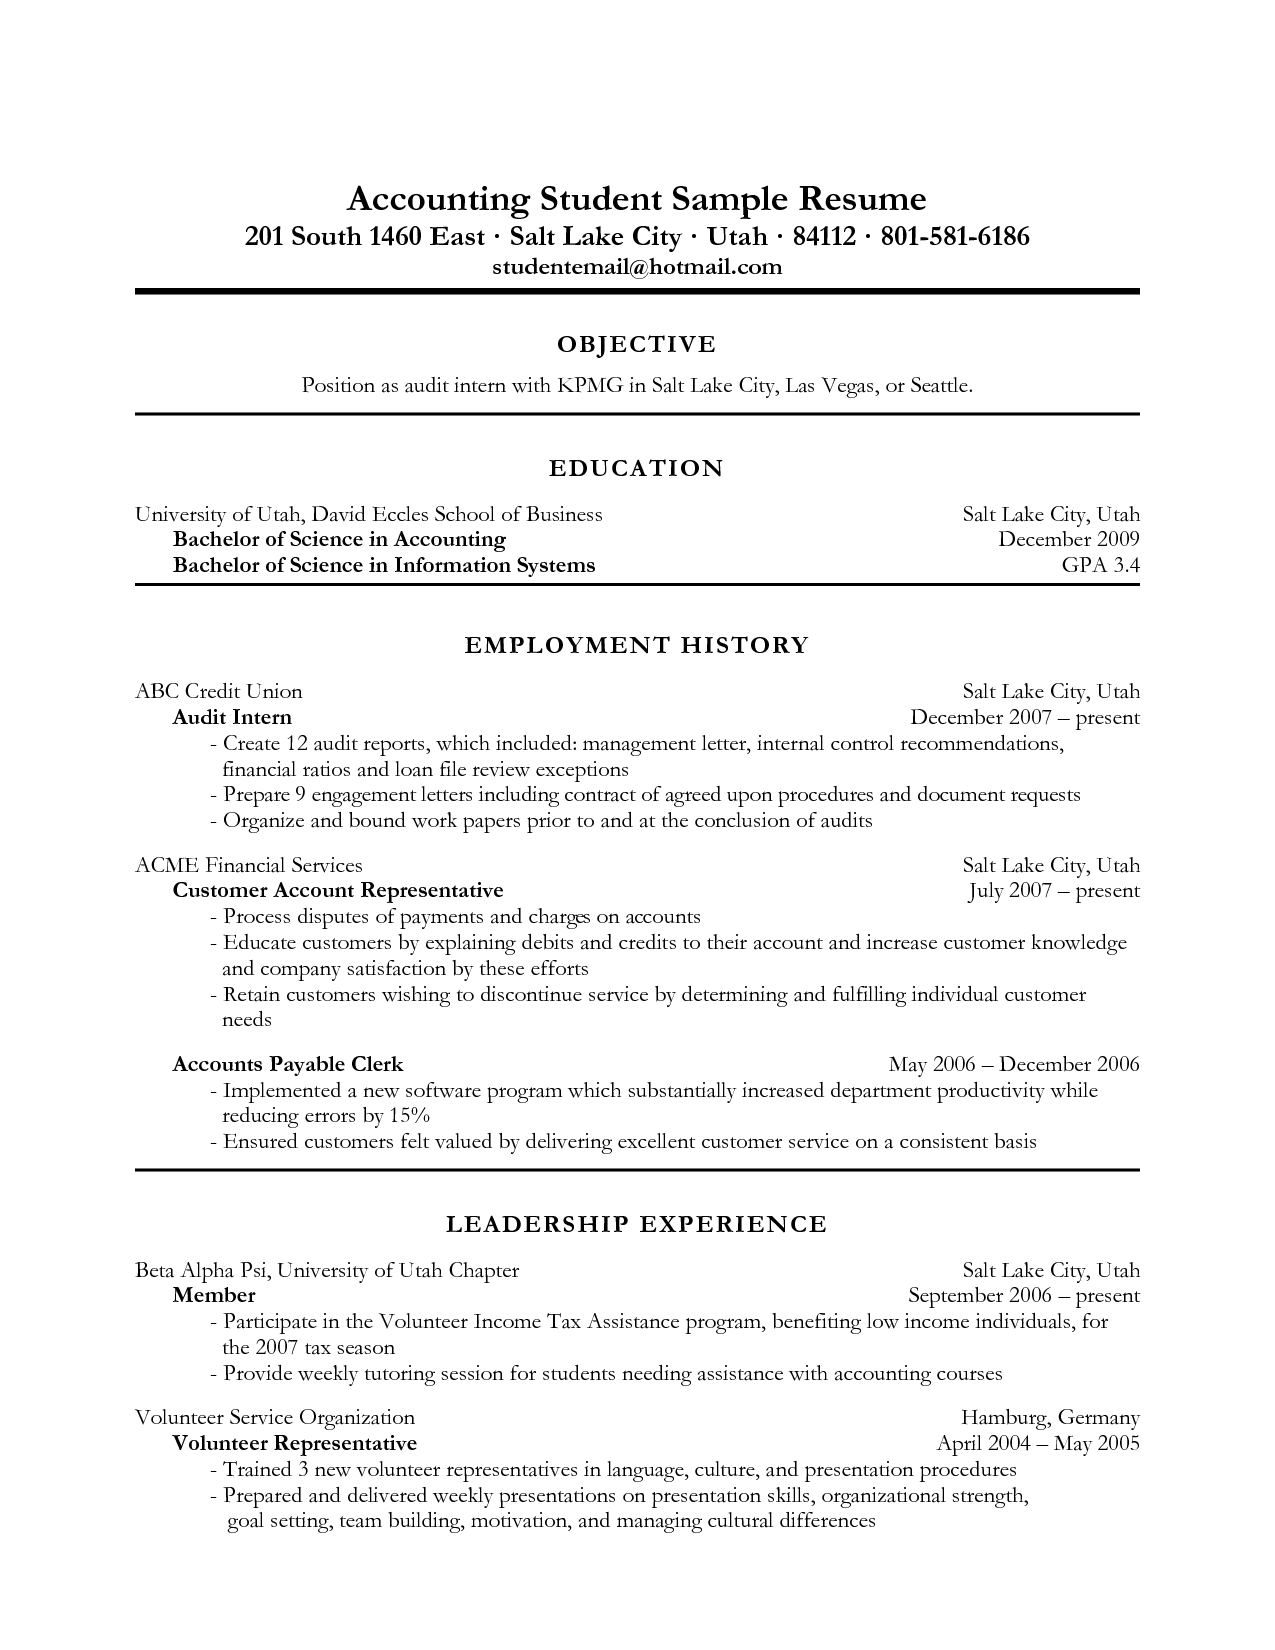 Accounting Internship Resume Objective Captivating Accounting Resume Objective Examples  Resume  Pinterest  Resume .